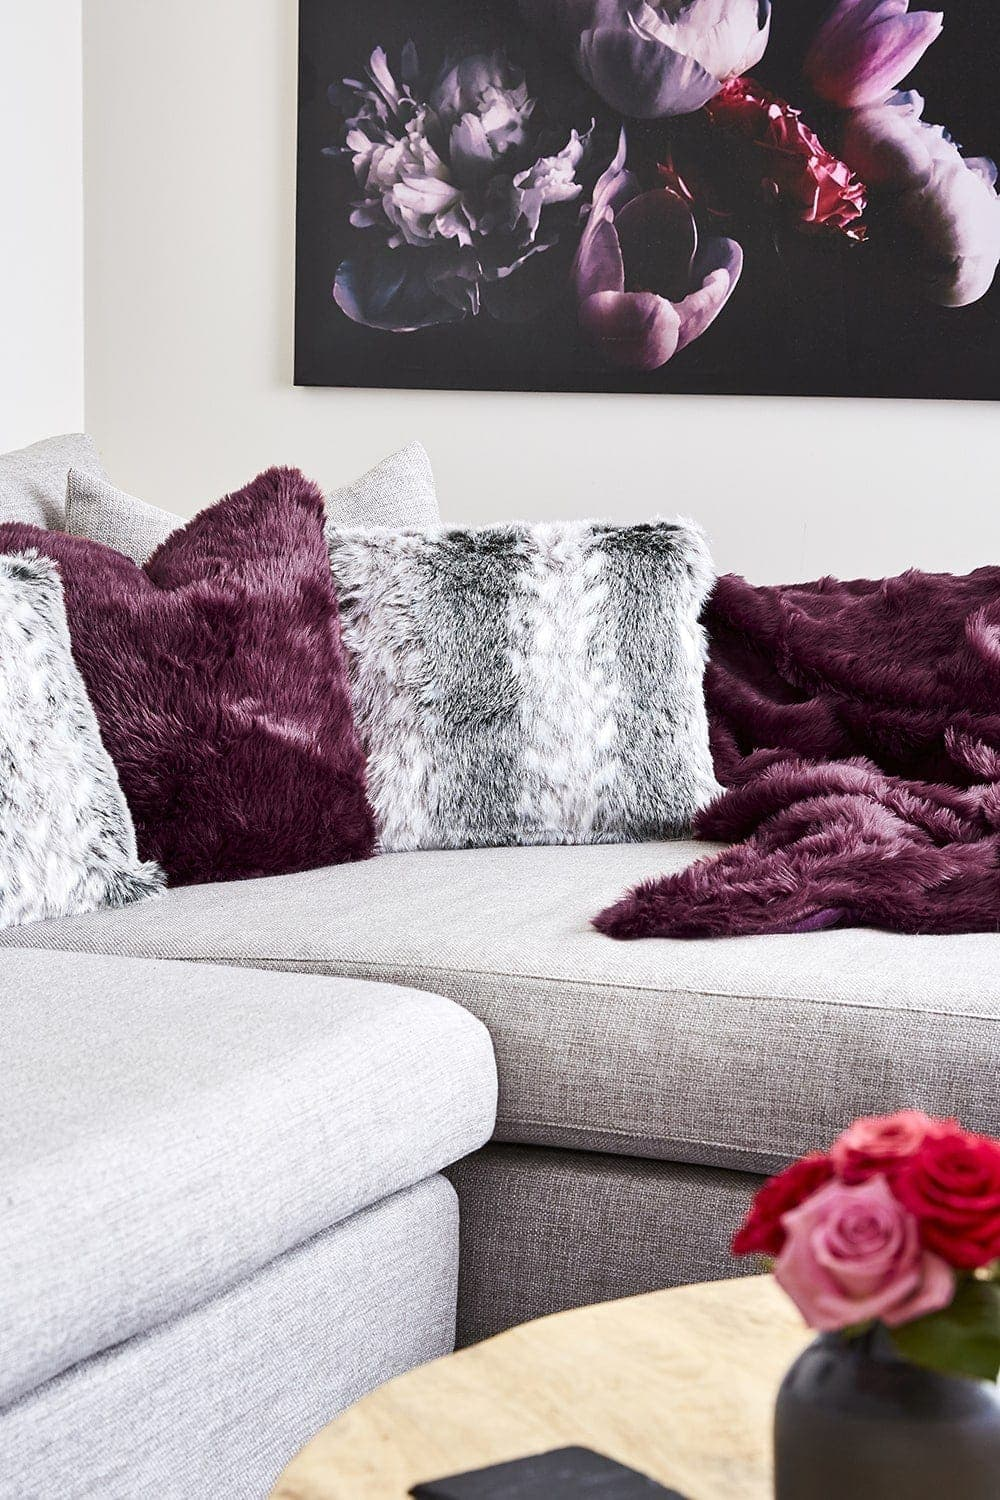 purple faux fur cushions and throw on light grey sofa and pink roses on coffee table